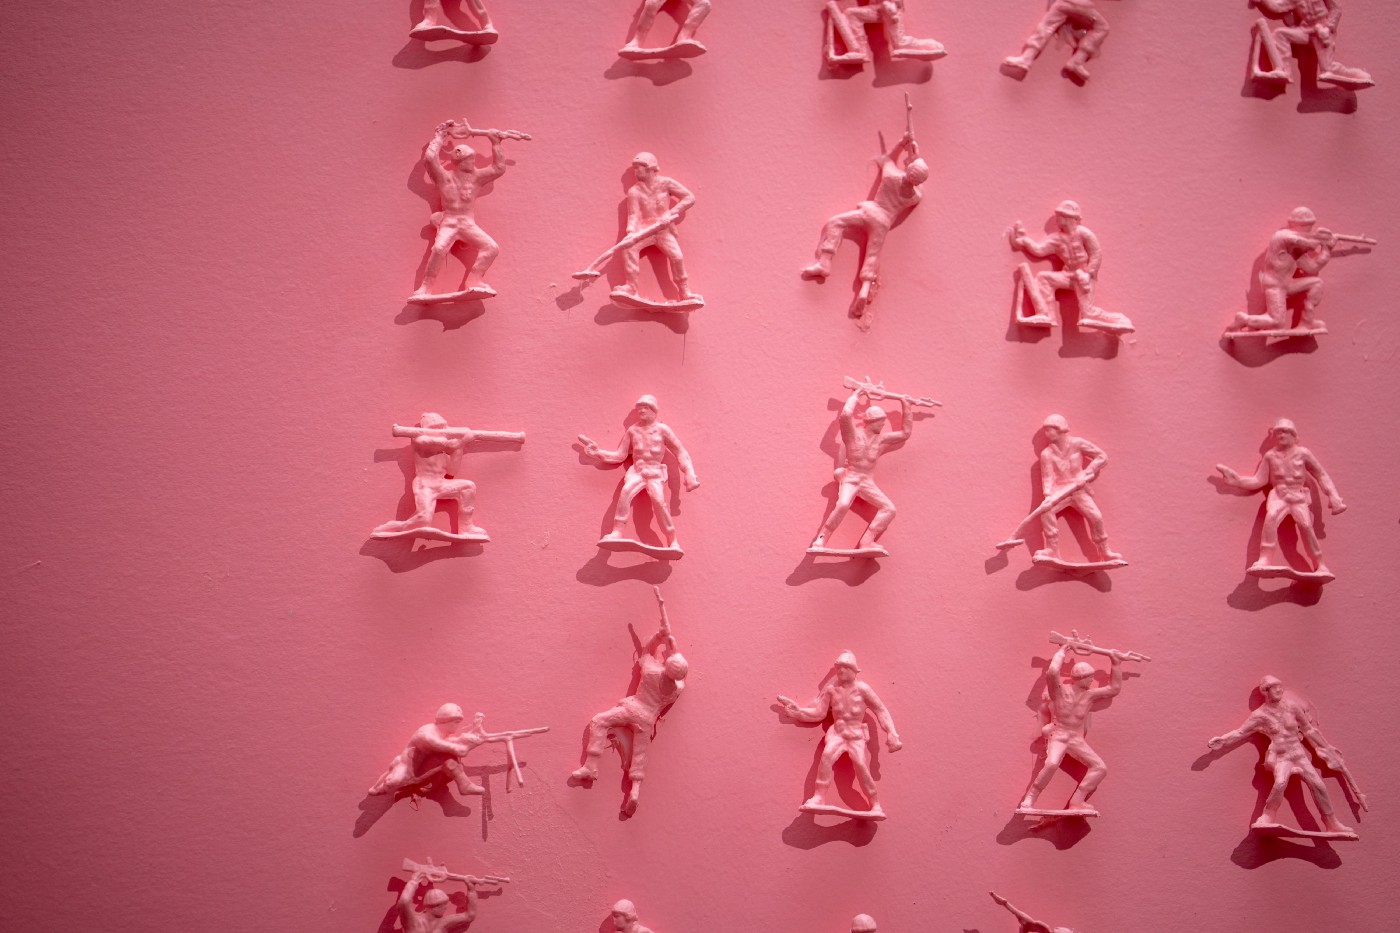 Pink army men on a pink background